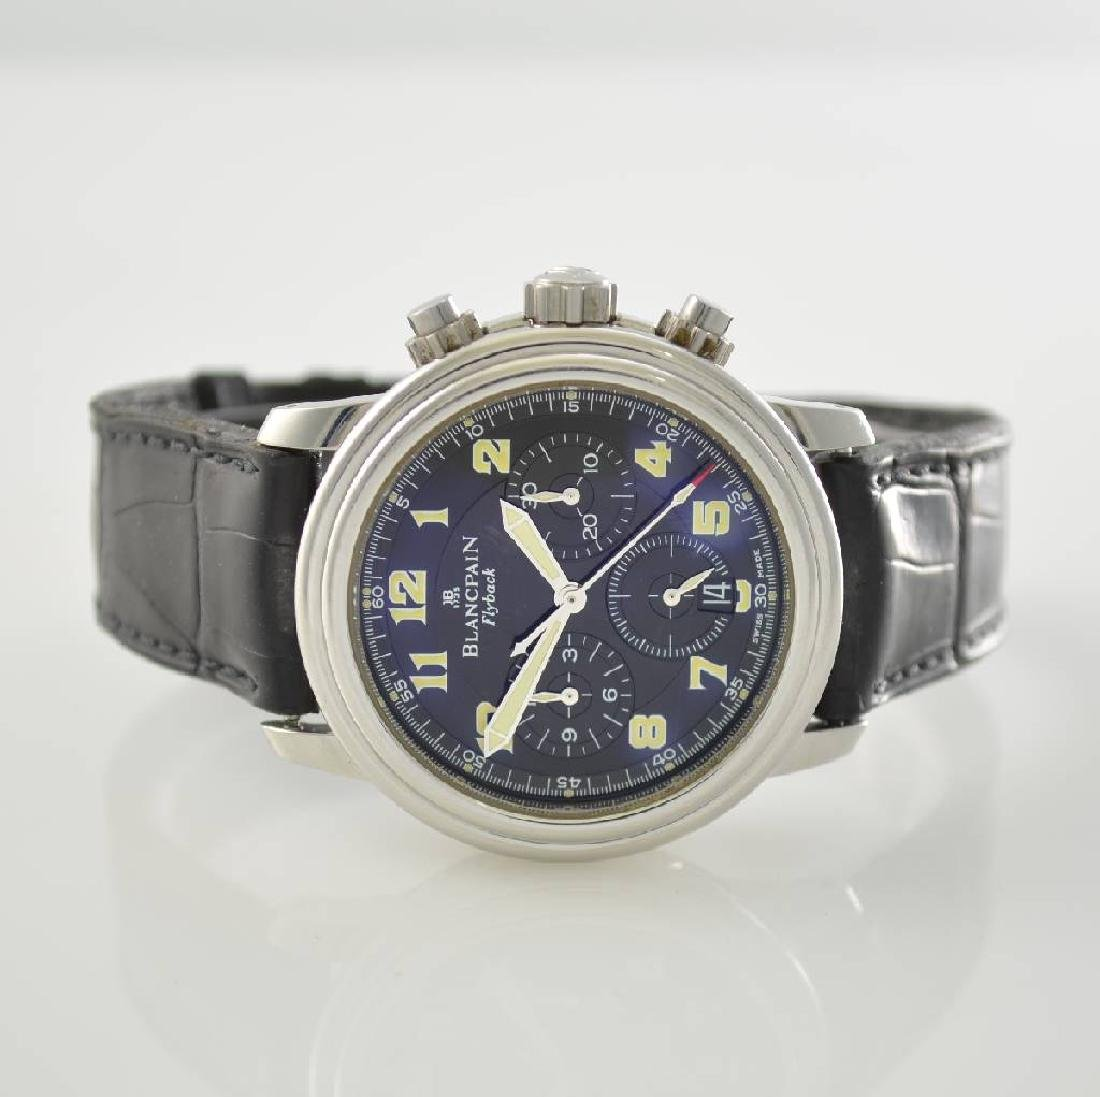 BLANCPAIN Flyback gents wristwatch with chronograph